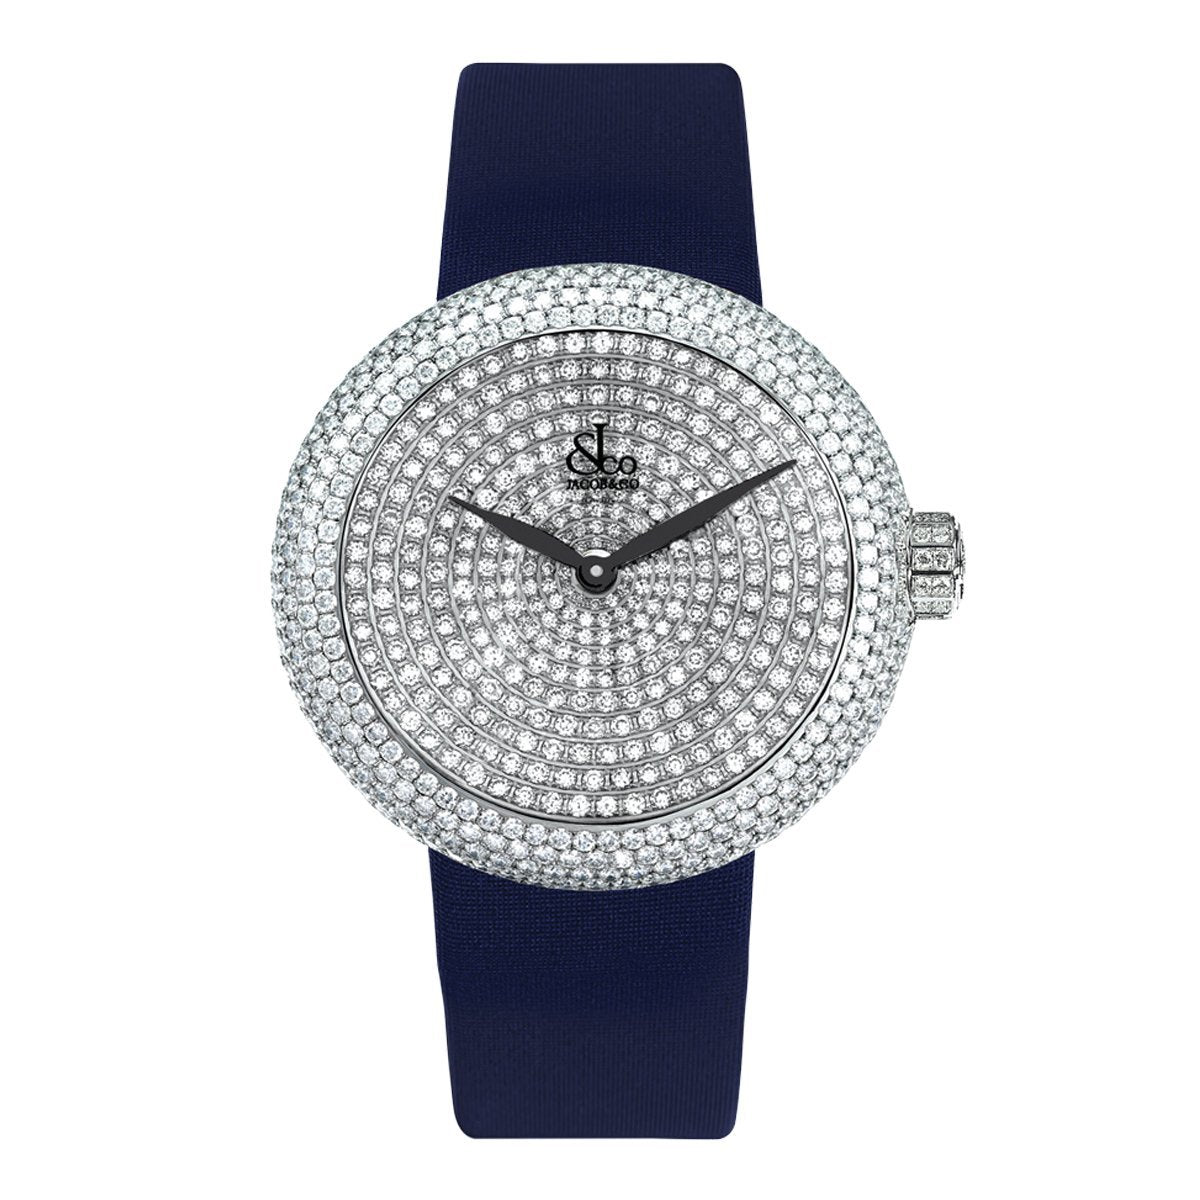 Jacob & Co. Brilliant Pave 44 - Watches & Crystals